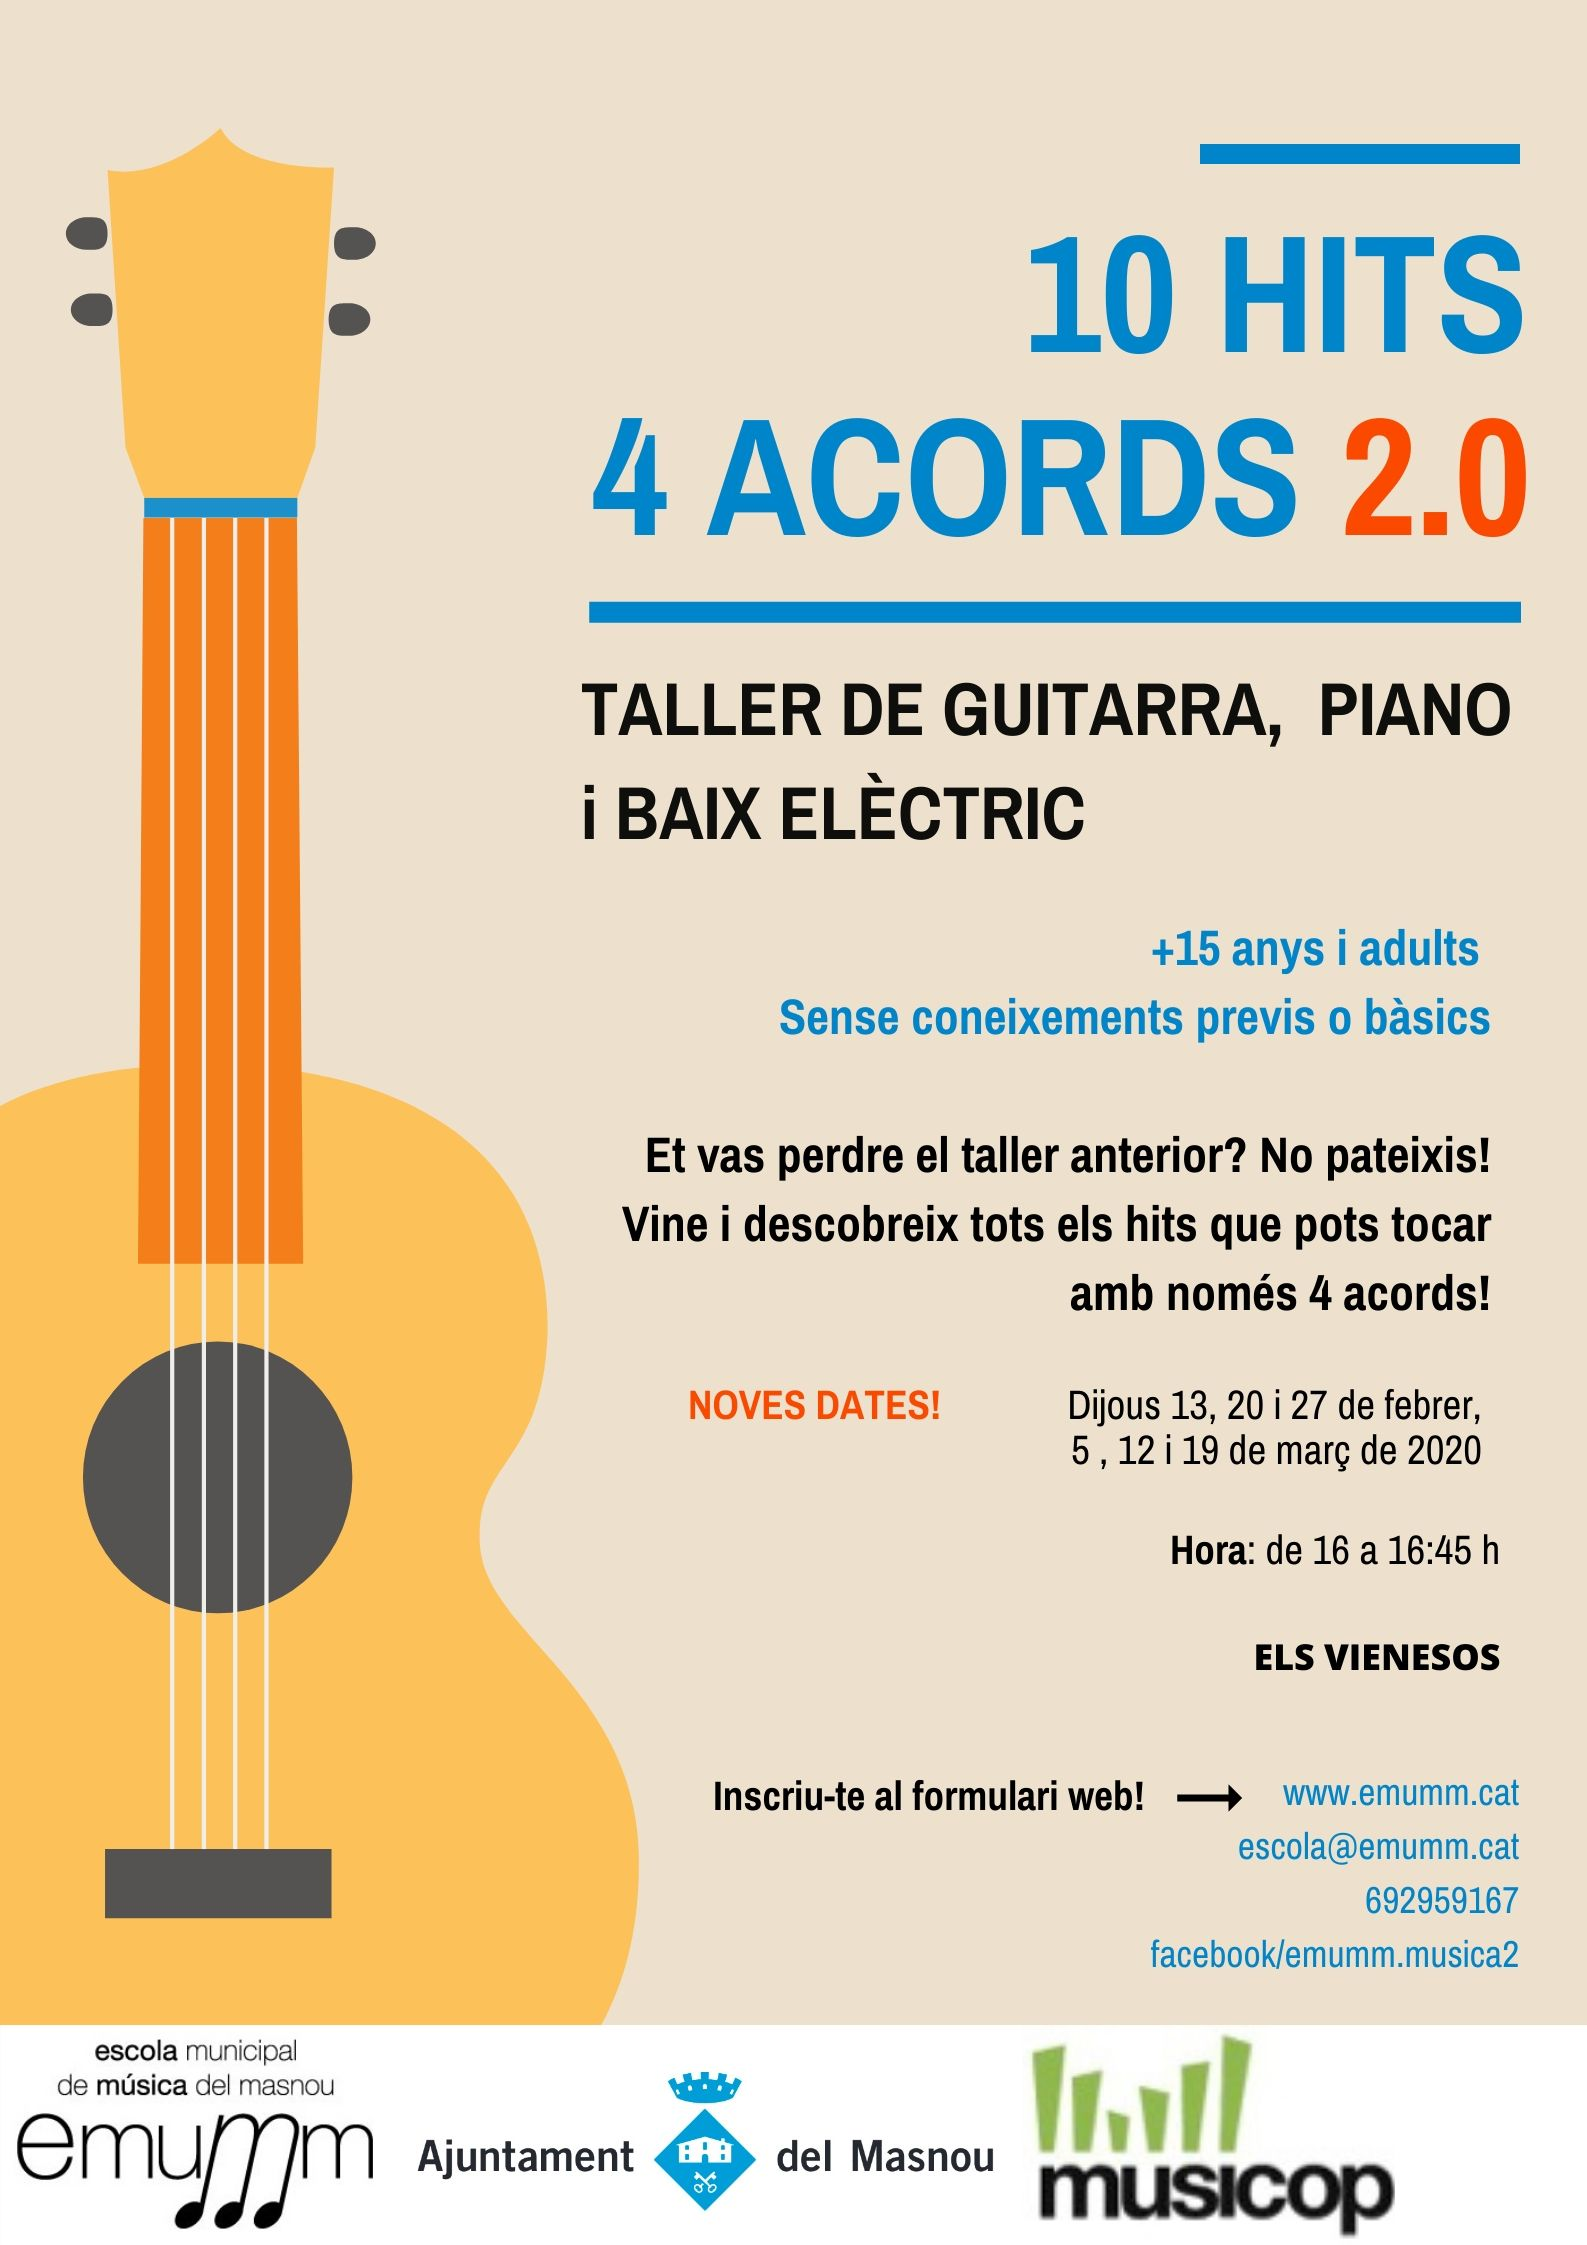 Taller de guitarra i piano: 10 hits, 4 acords